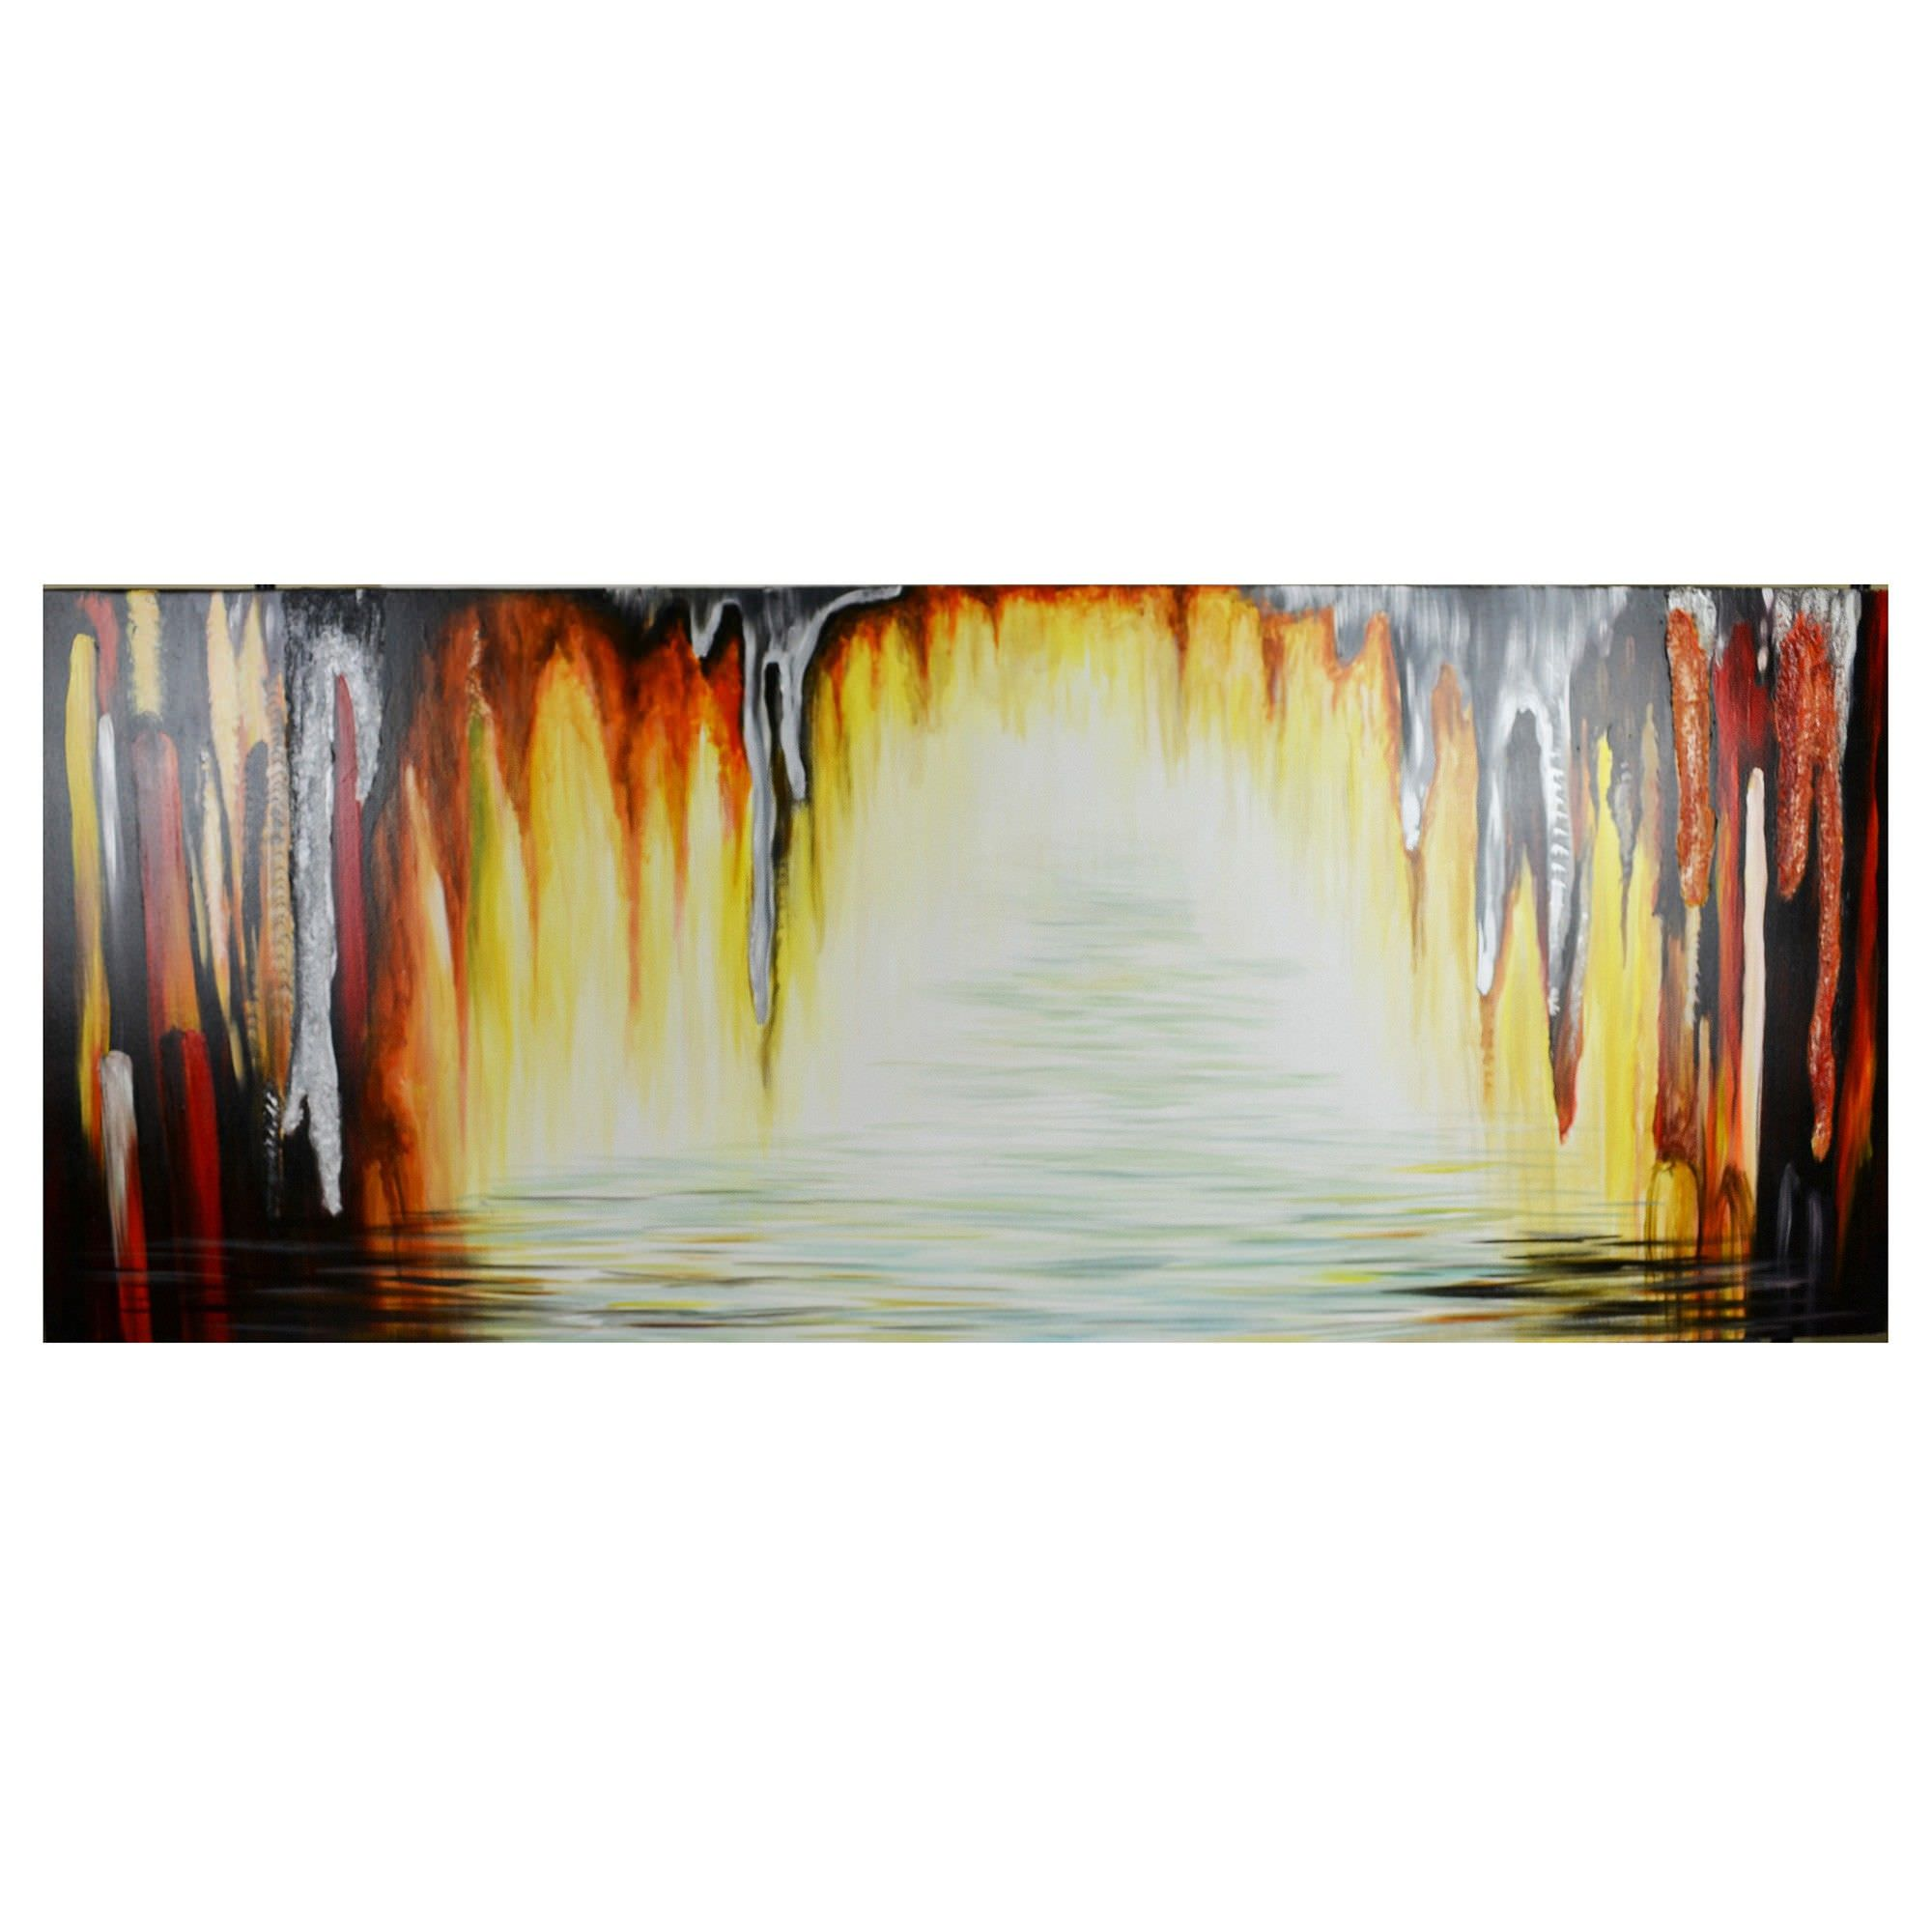 Streched Canvas Abstract Painting Wall Art, Stalactites Cave River, 150Cm